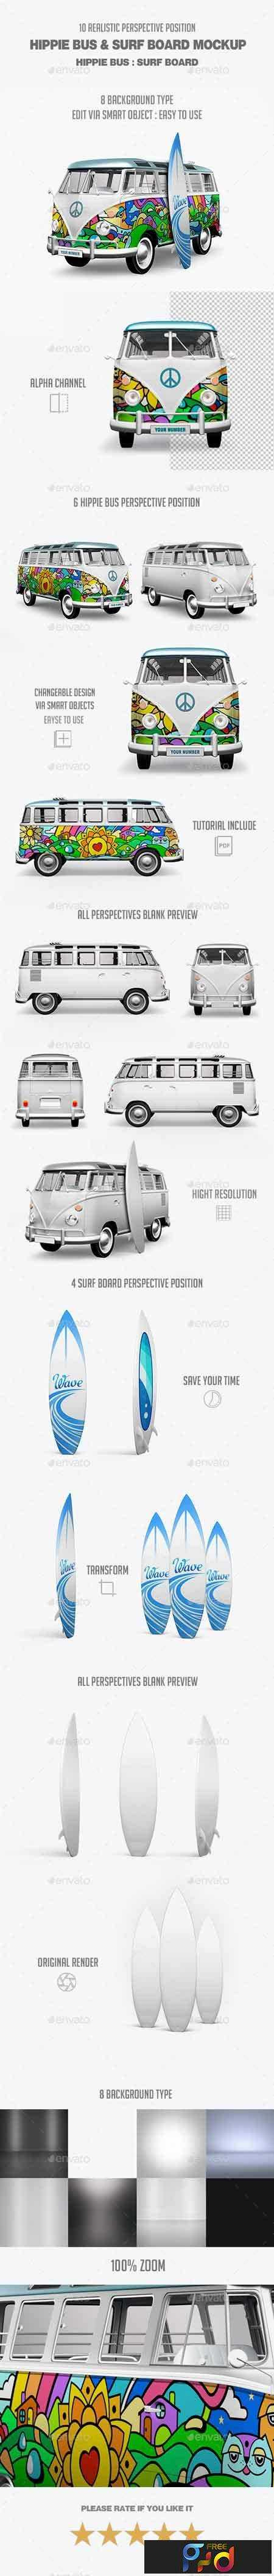 1802075 Hippie Bus & Surf Board Mock-Up 21295793 1